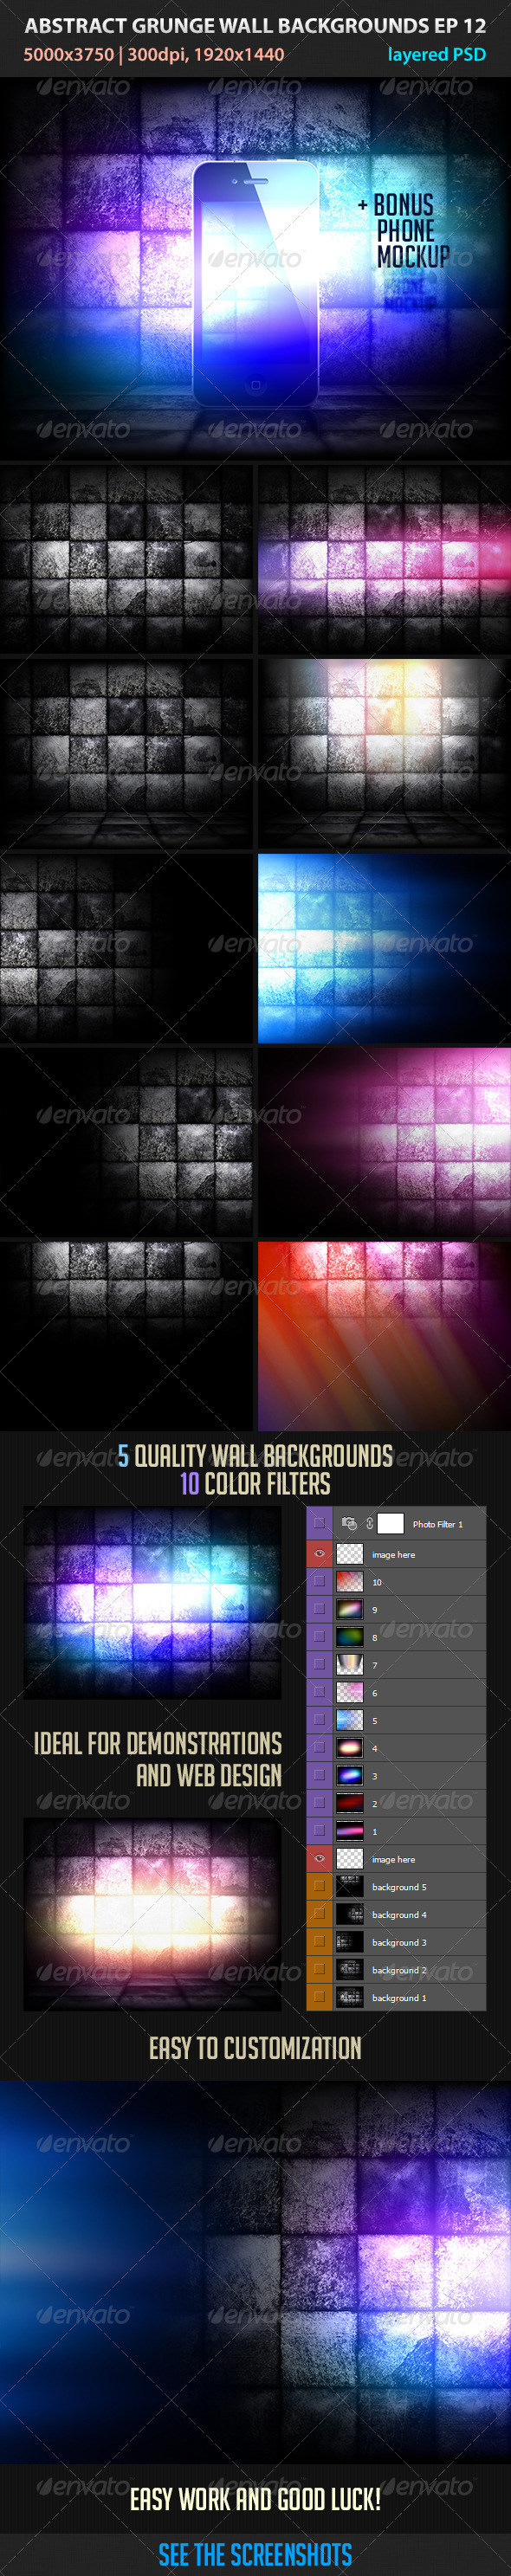 GraphicRiver Abstract Grunge Wall Backgrounds ep 12 3291883